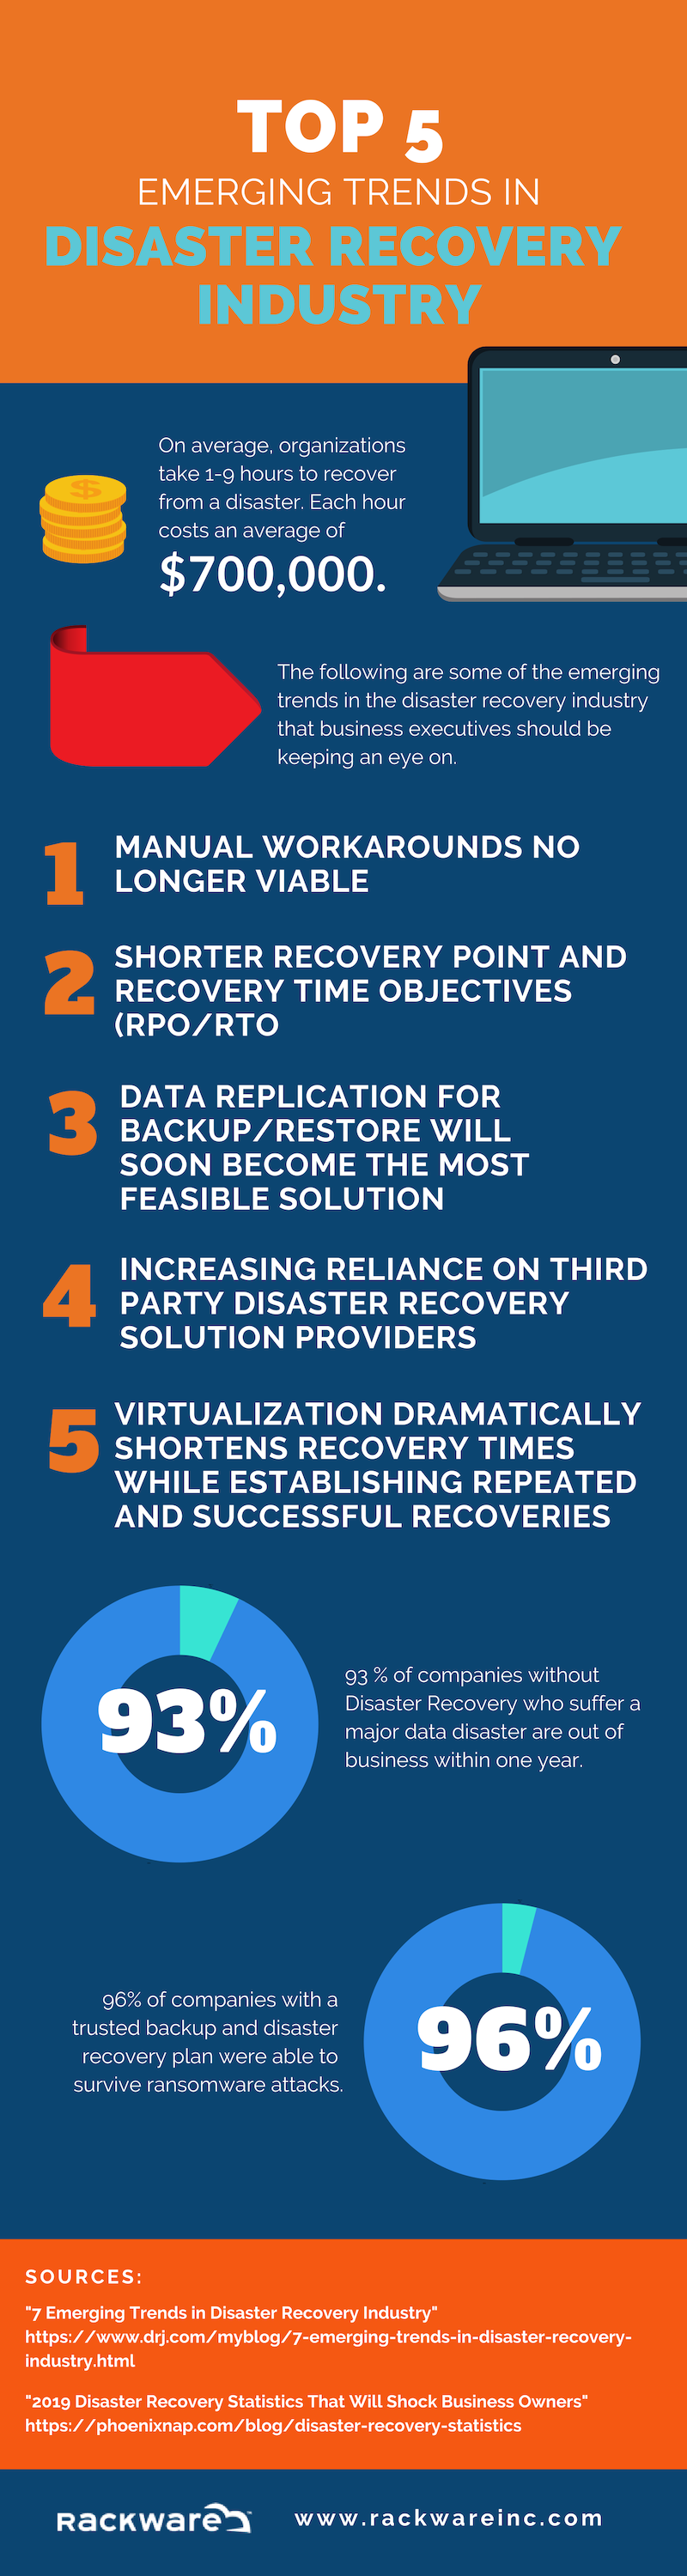 Top 5 Emerging Trends in the Disaster Recovery Industry